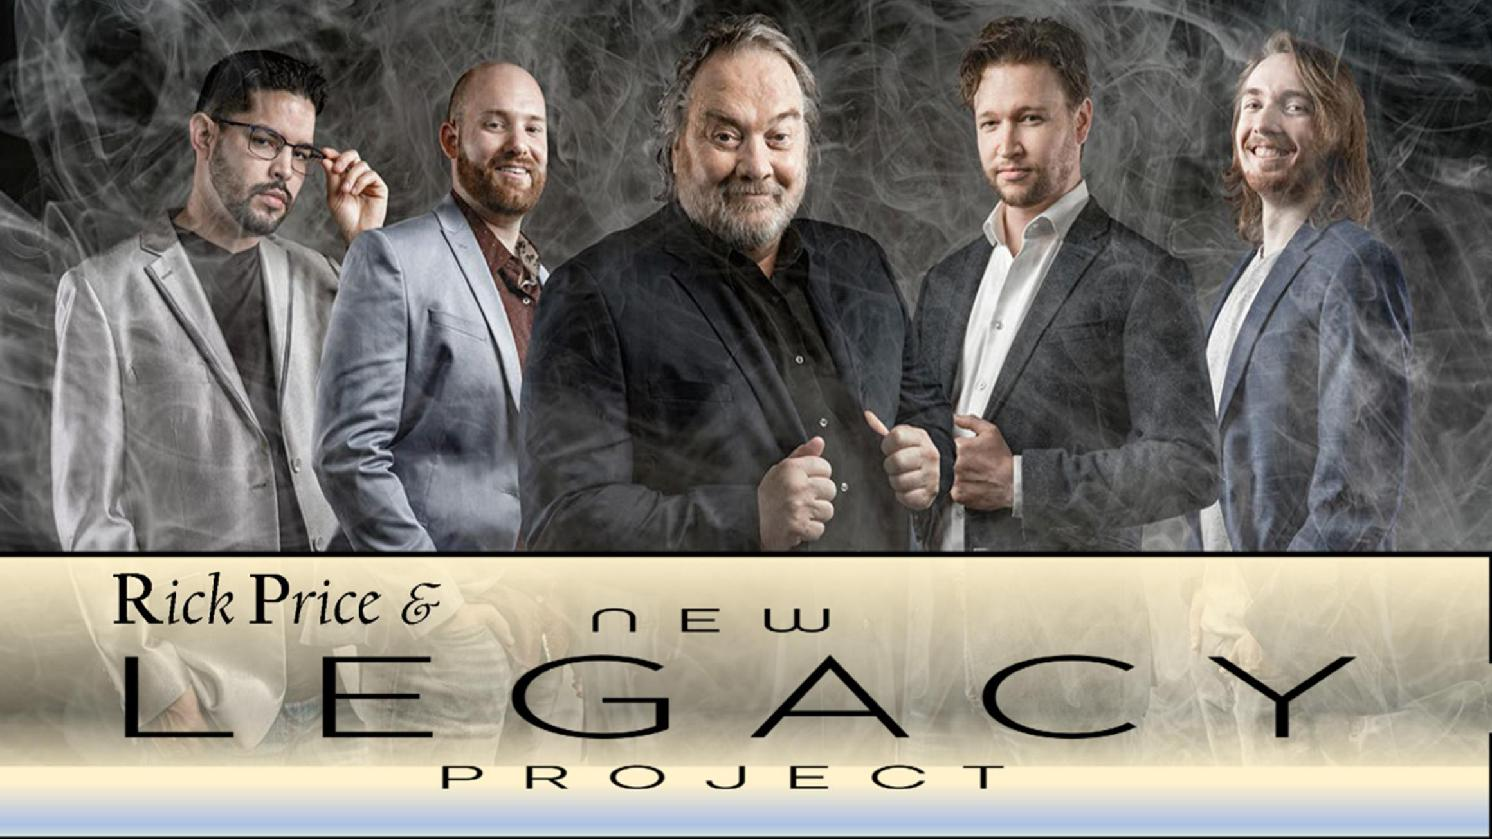 Live In Person Concert with Nashville-based New Legacy